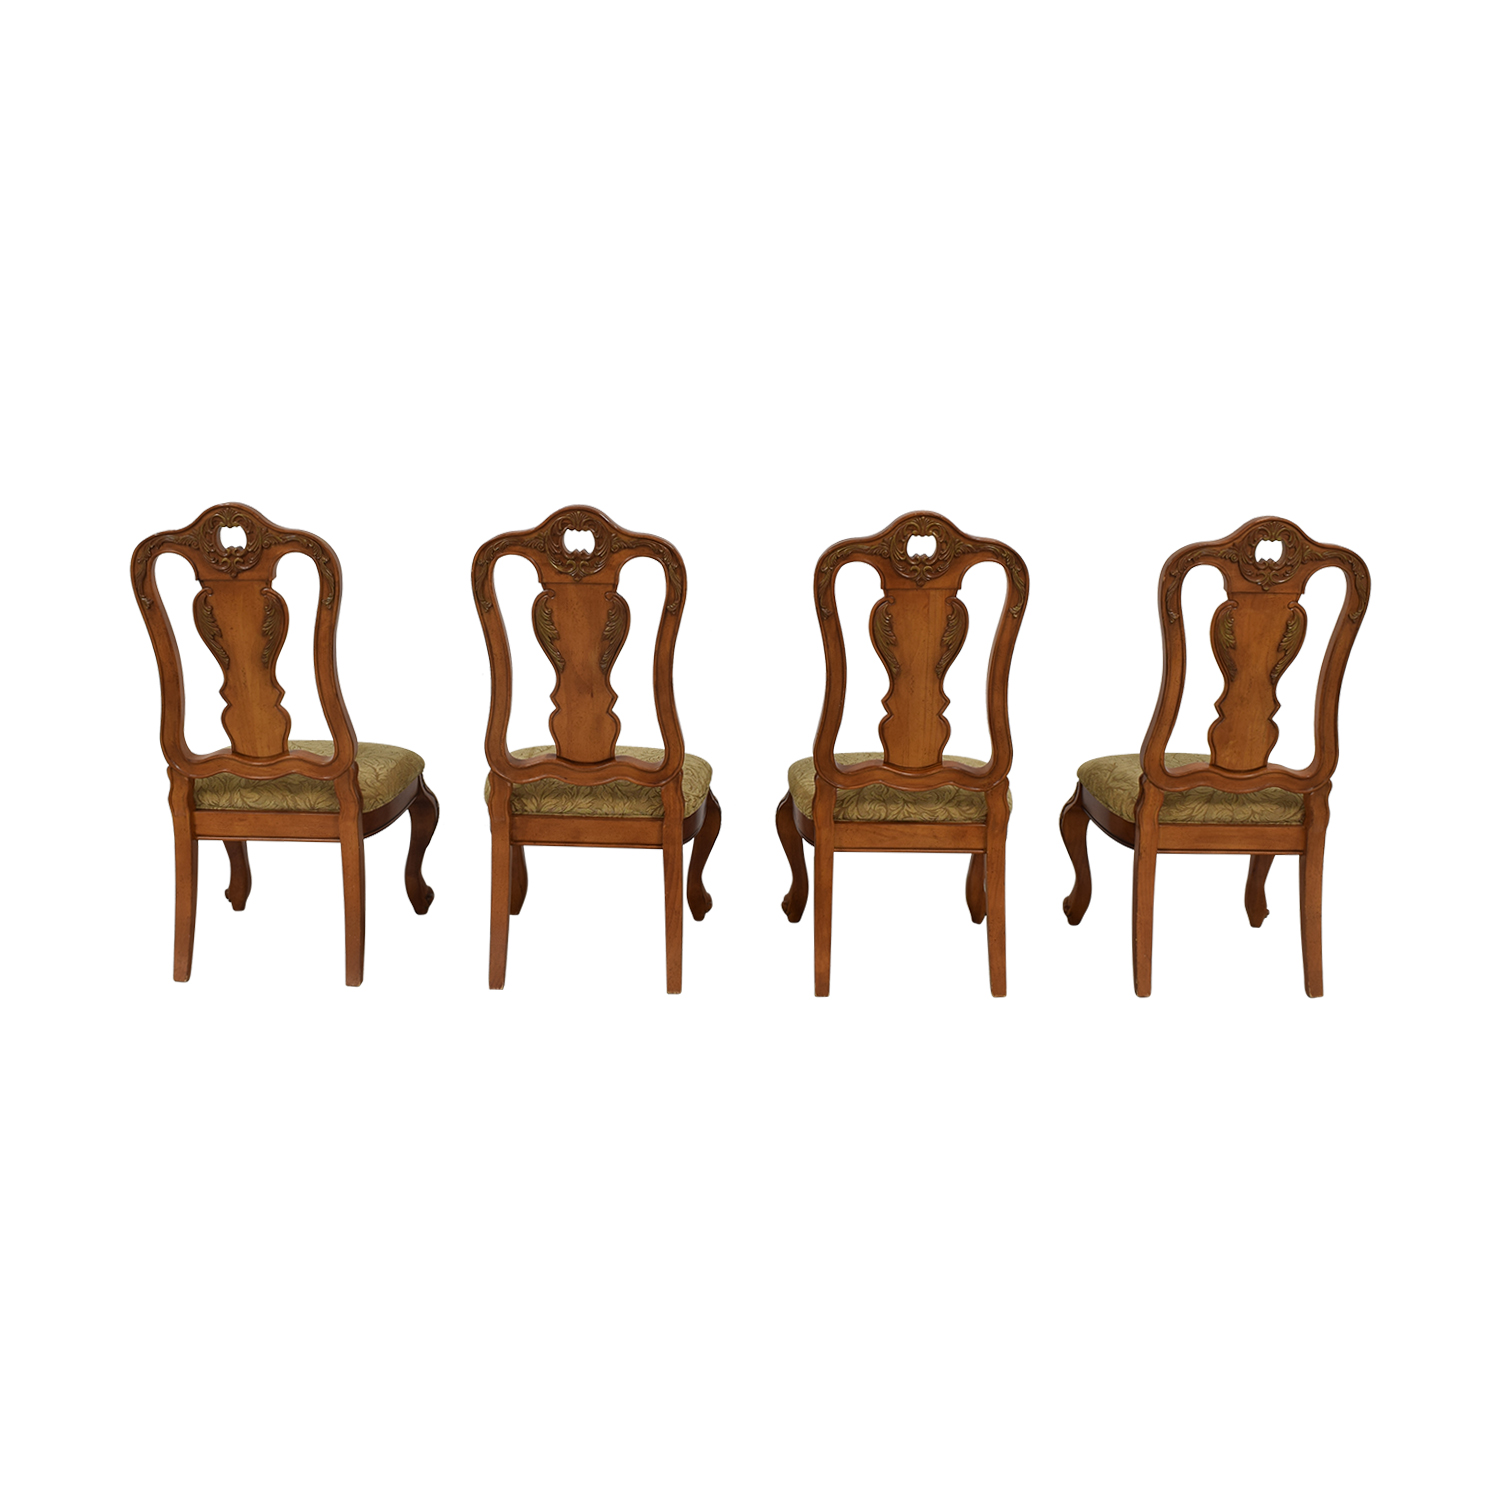 buy Legacy Classic Furniture Legacy Classic Dining Chairs online